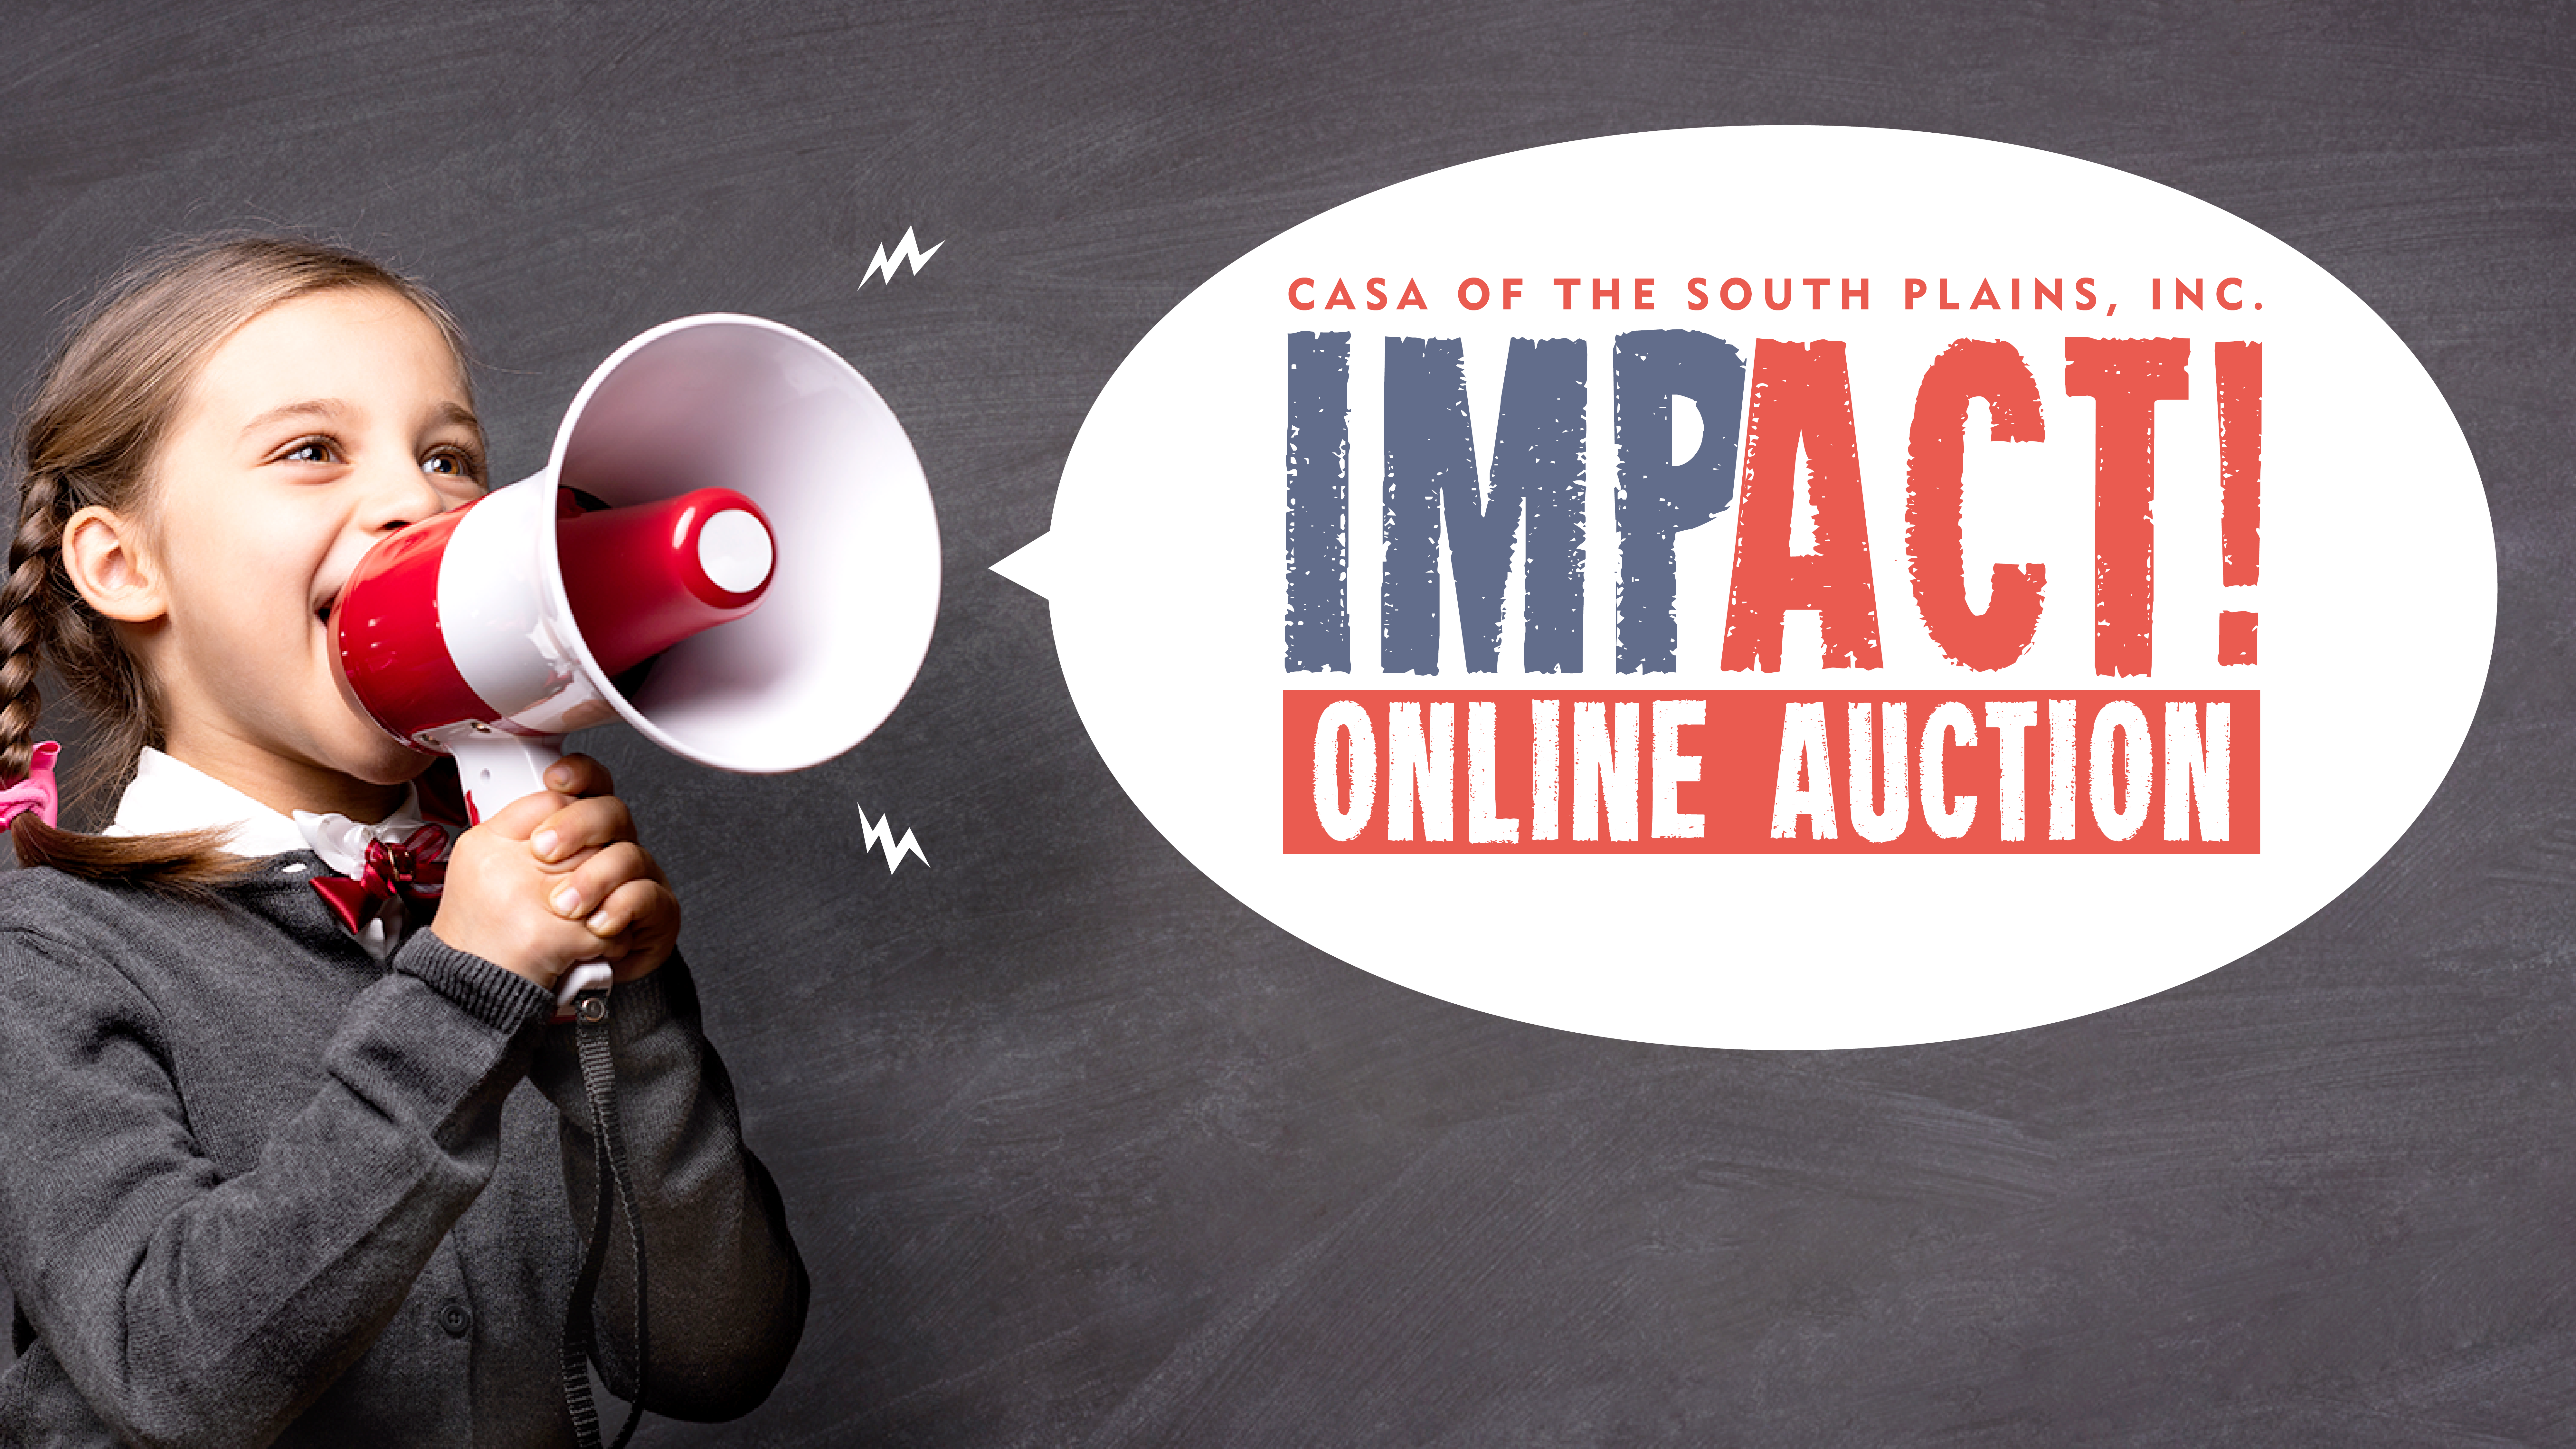 CASA IMPACT! Online Auction